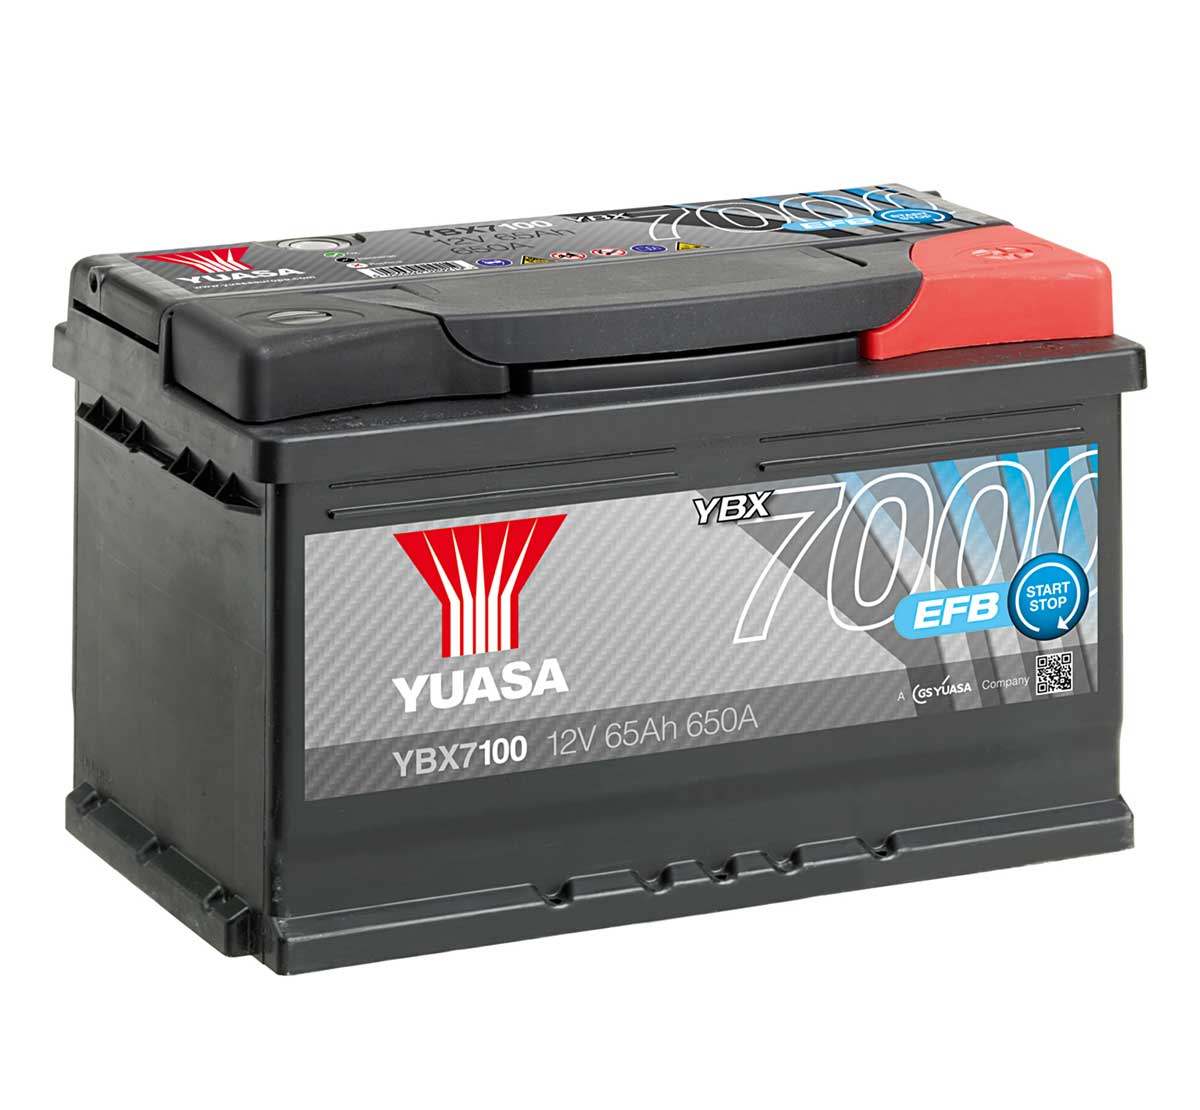 Yuasa Ybx7100 Efb Stop Start Plus 12v Car Battery Mds Battery